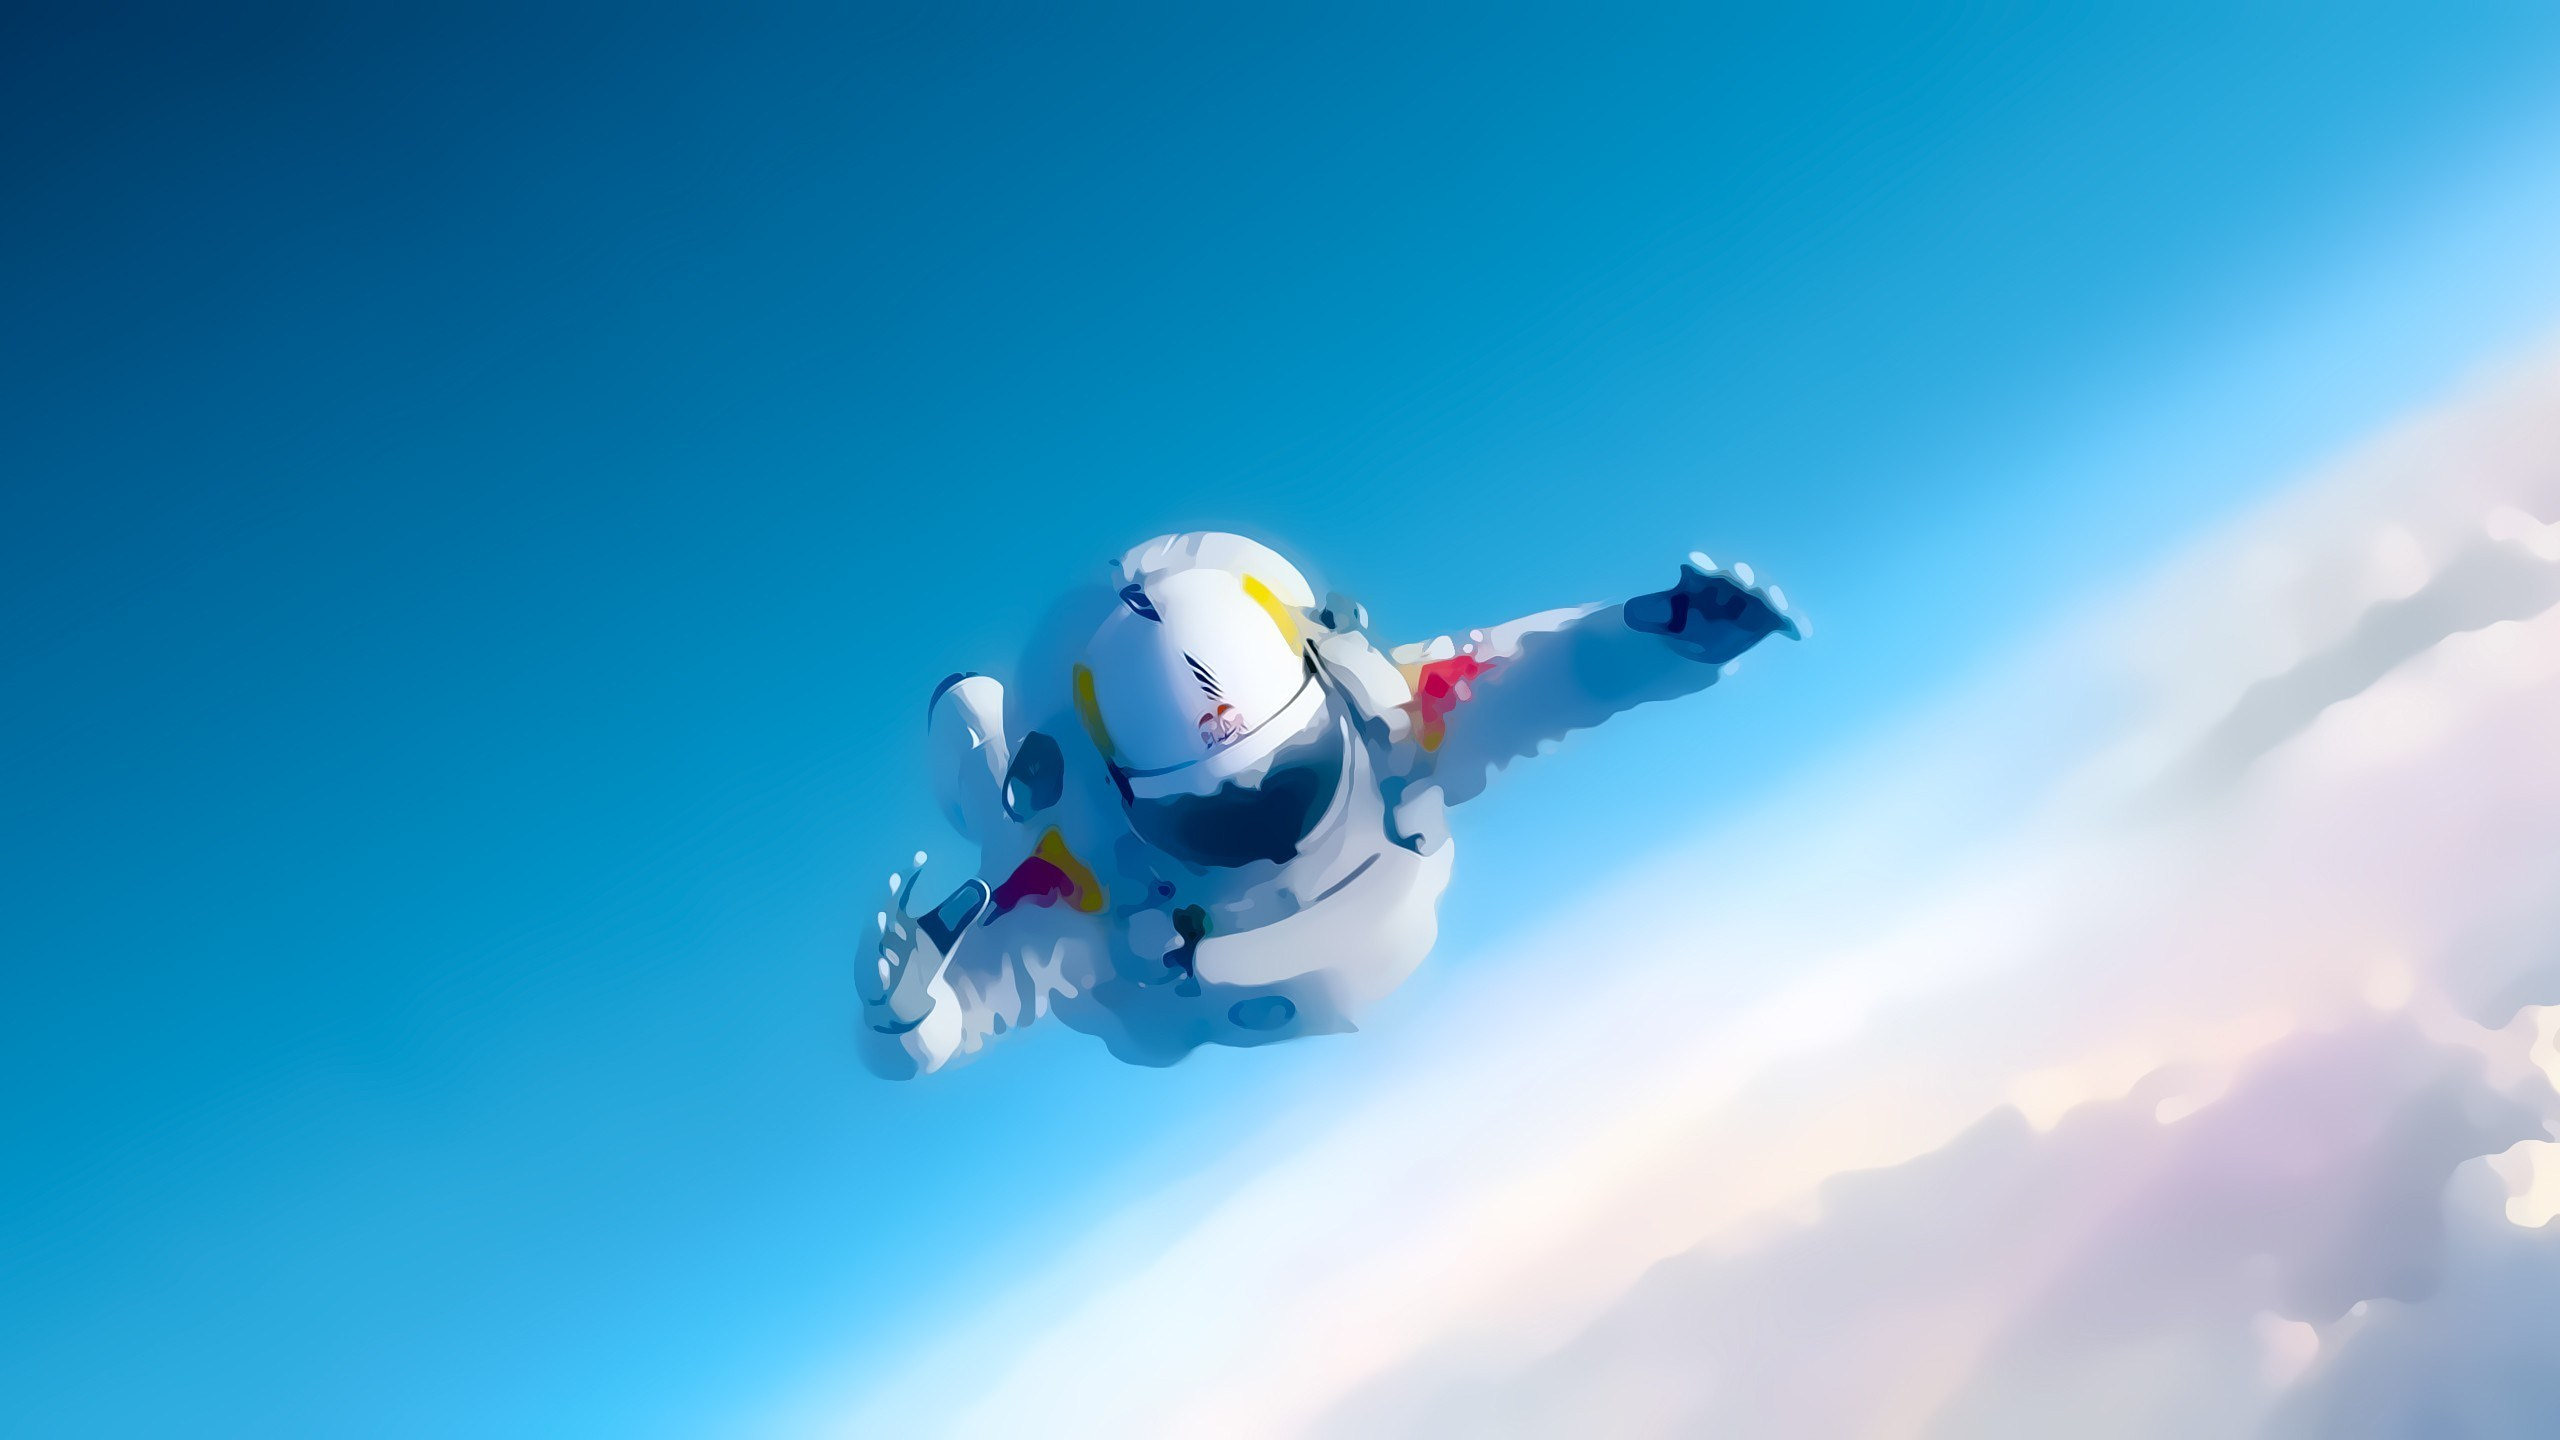 Felix Baumgartner Skydiver Art